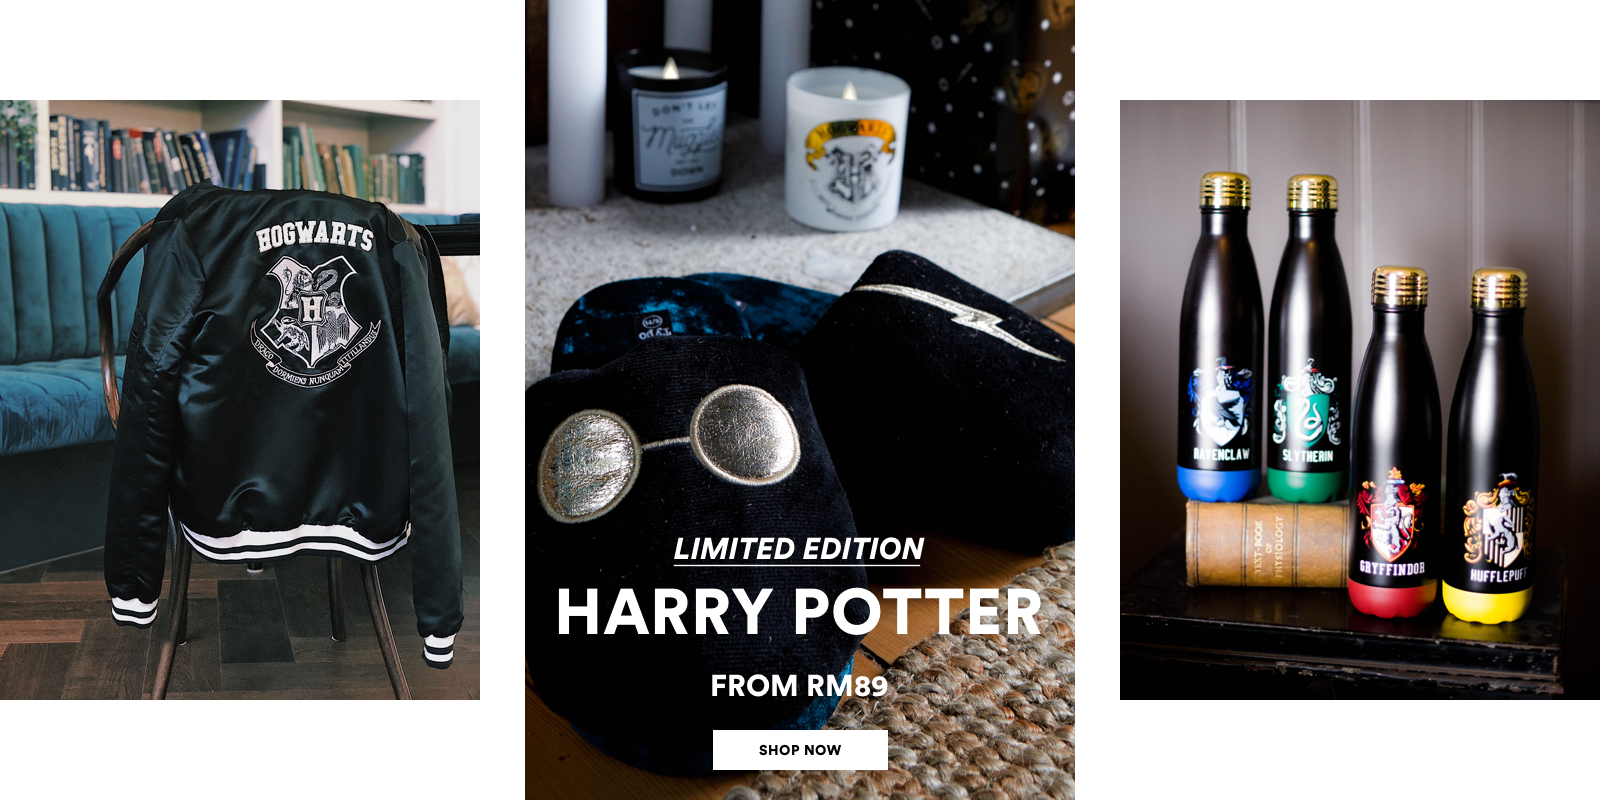 Limited Edition. Harry Potter from RM89. Click to shop.